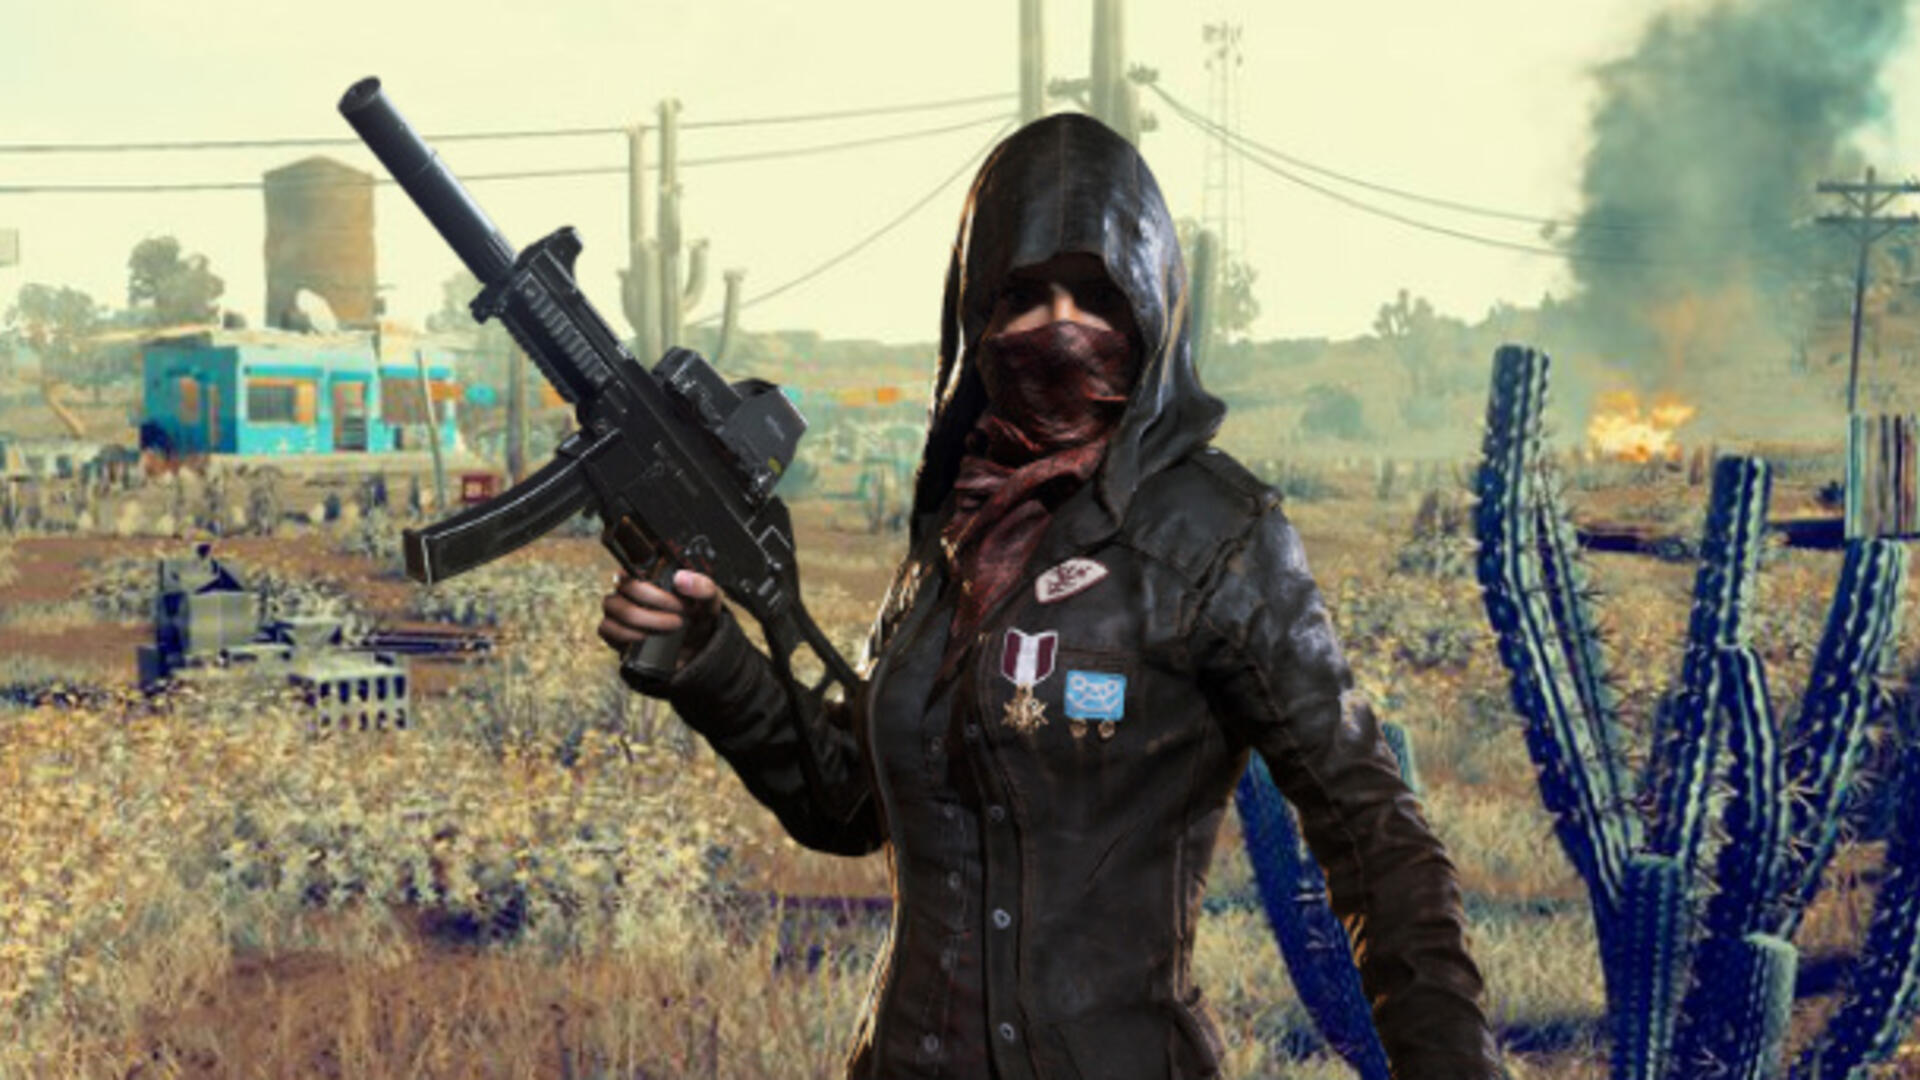 PlayerUnknown's Battlegrounds Offers Another Tease of The New Desert Map